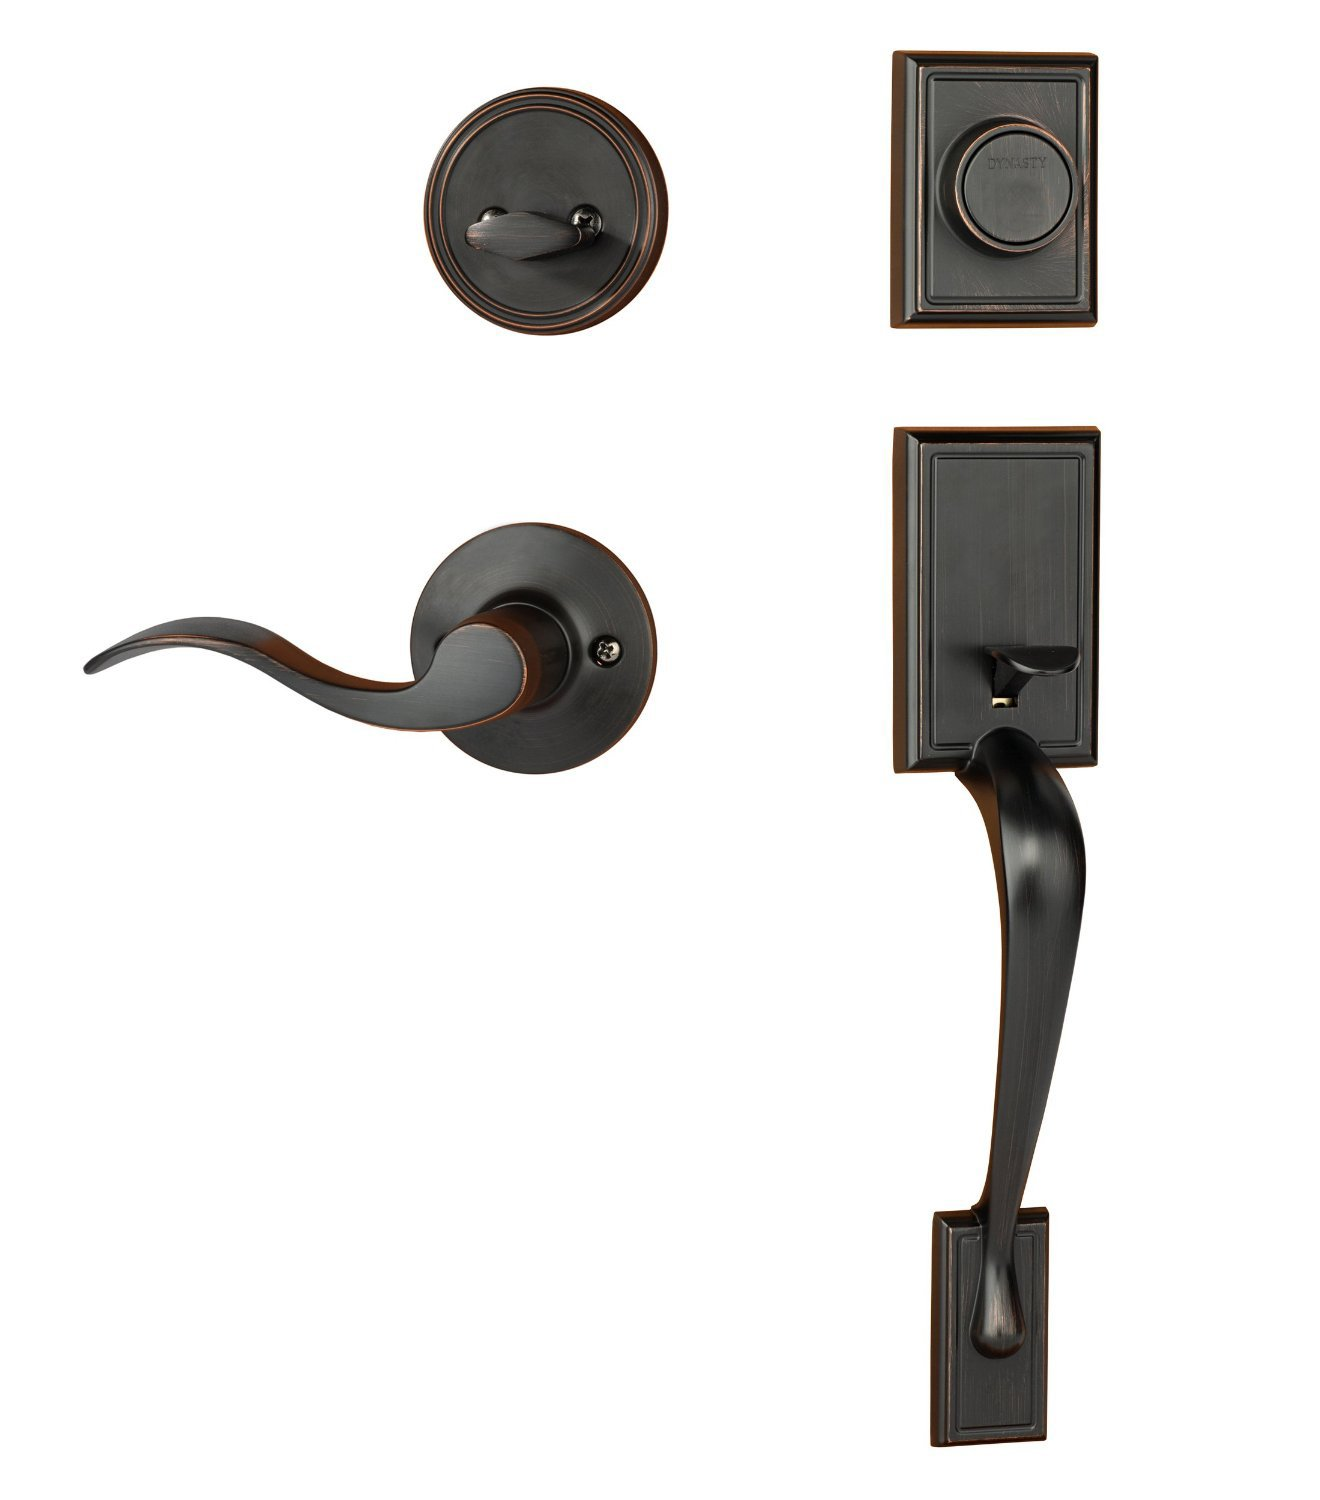 Dynasty Hardware RID-HER-405-12PR Ridgecrest Front Door Dummy Handleset, Aged Oil Rubbed Bronze, with Heritage Lever, Right Hand